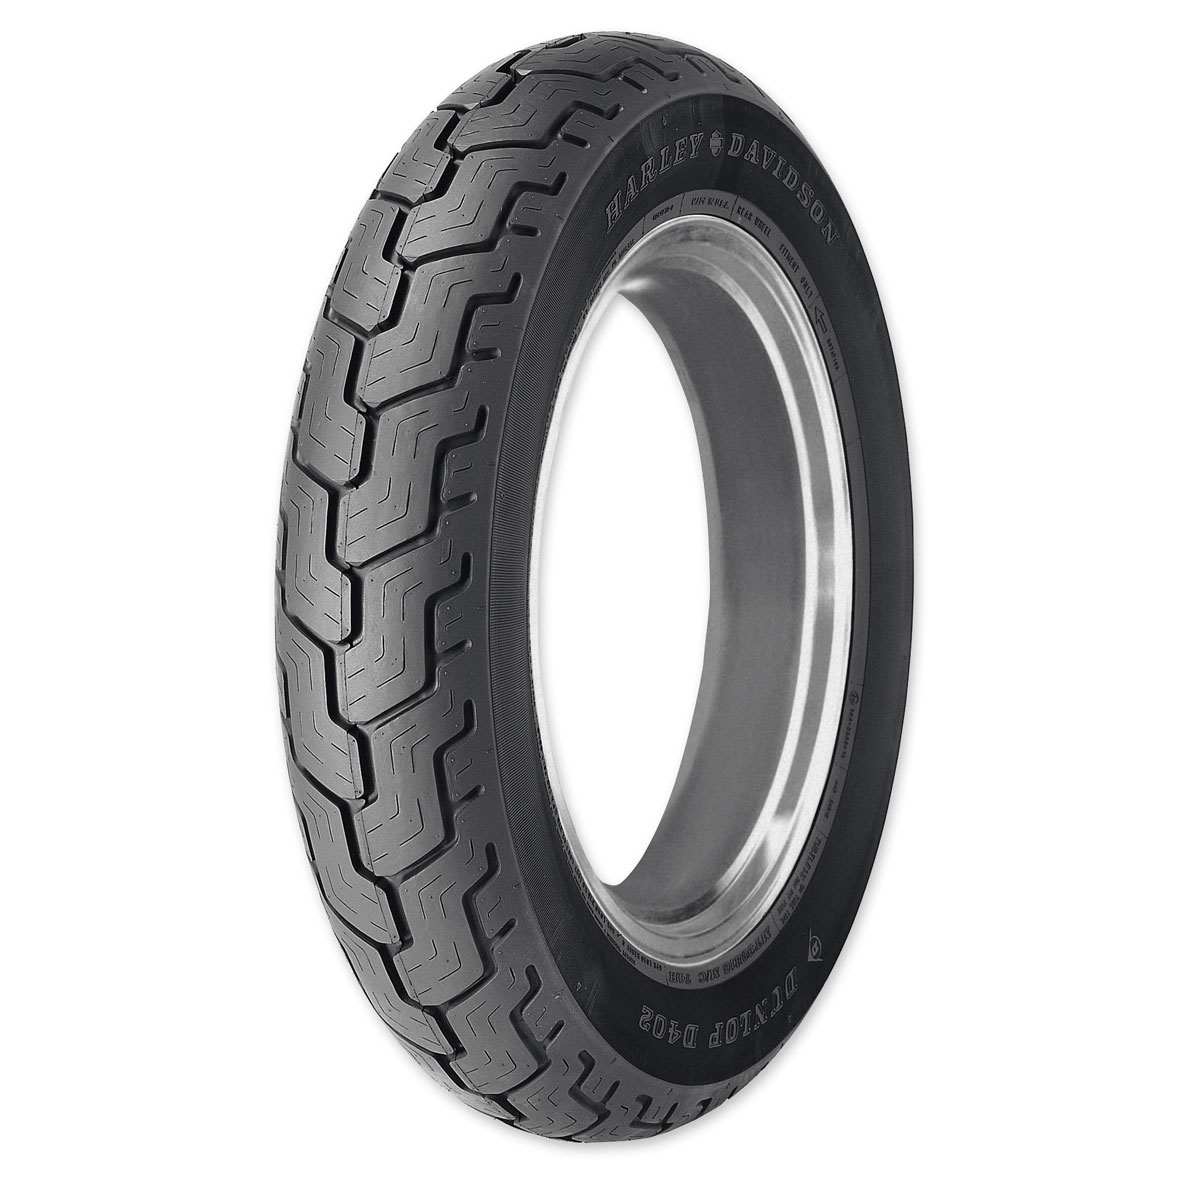 Dunlop k491 motorcycle tires motaveracom for Dunlop white letter motorcycle tires